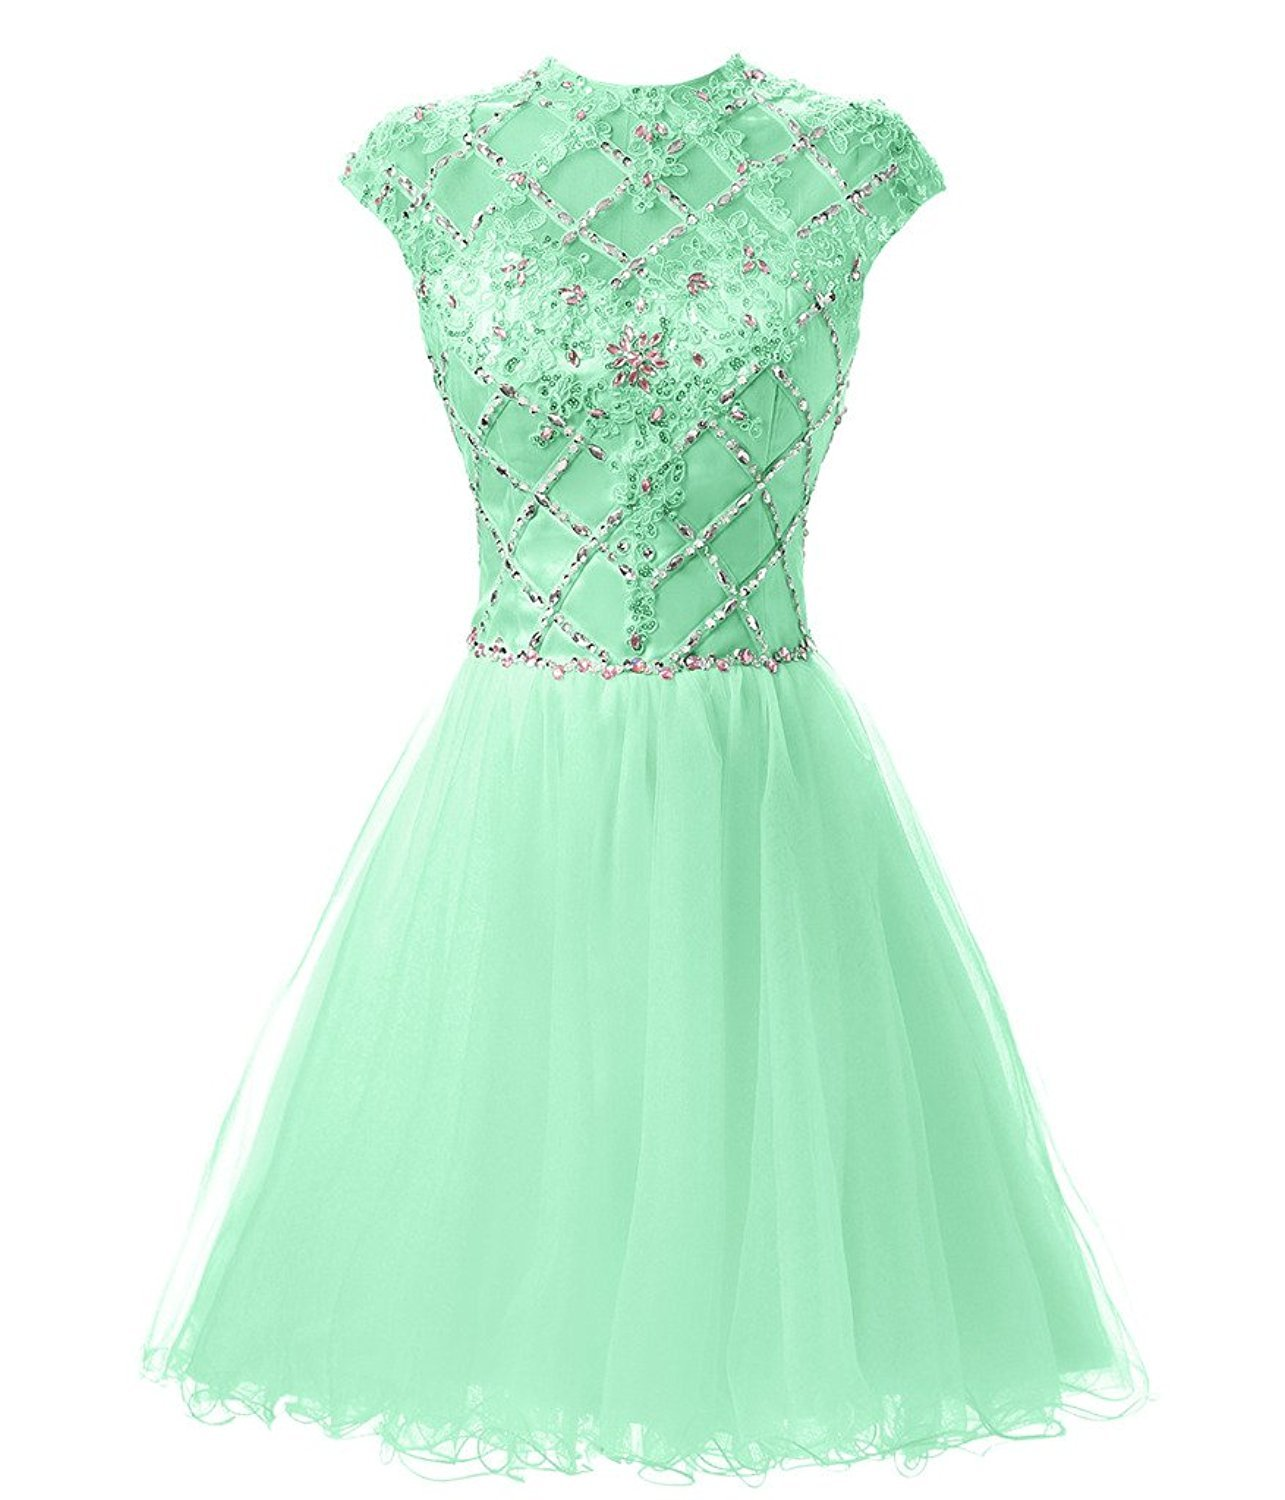 High Neck Prom Dresses Lace Applique Dress High Neck Cap Sleeve Homecoming Dress - $144.00